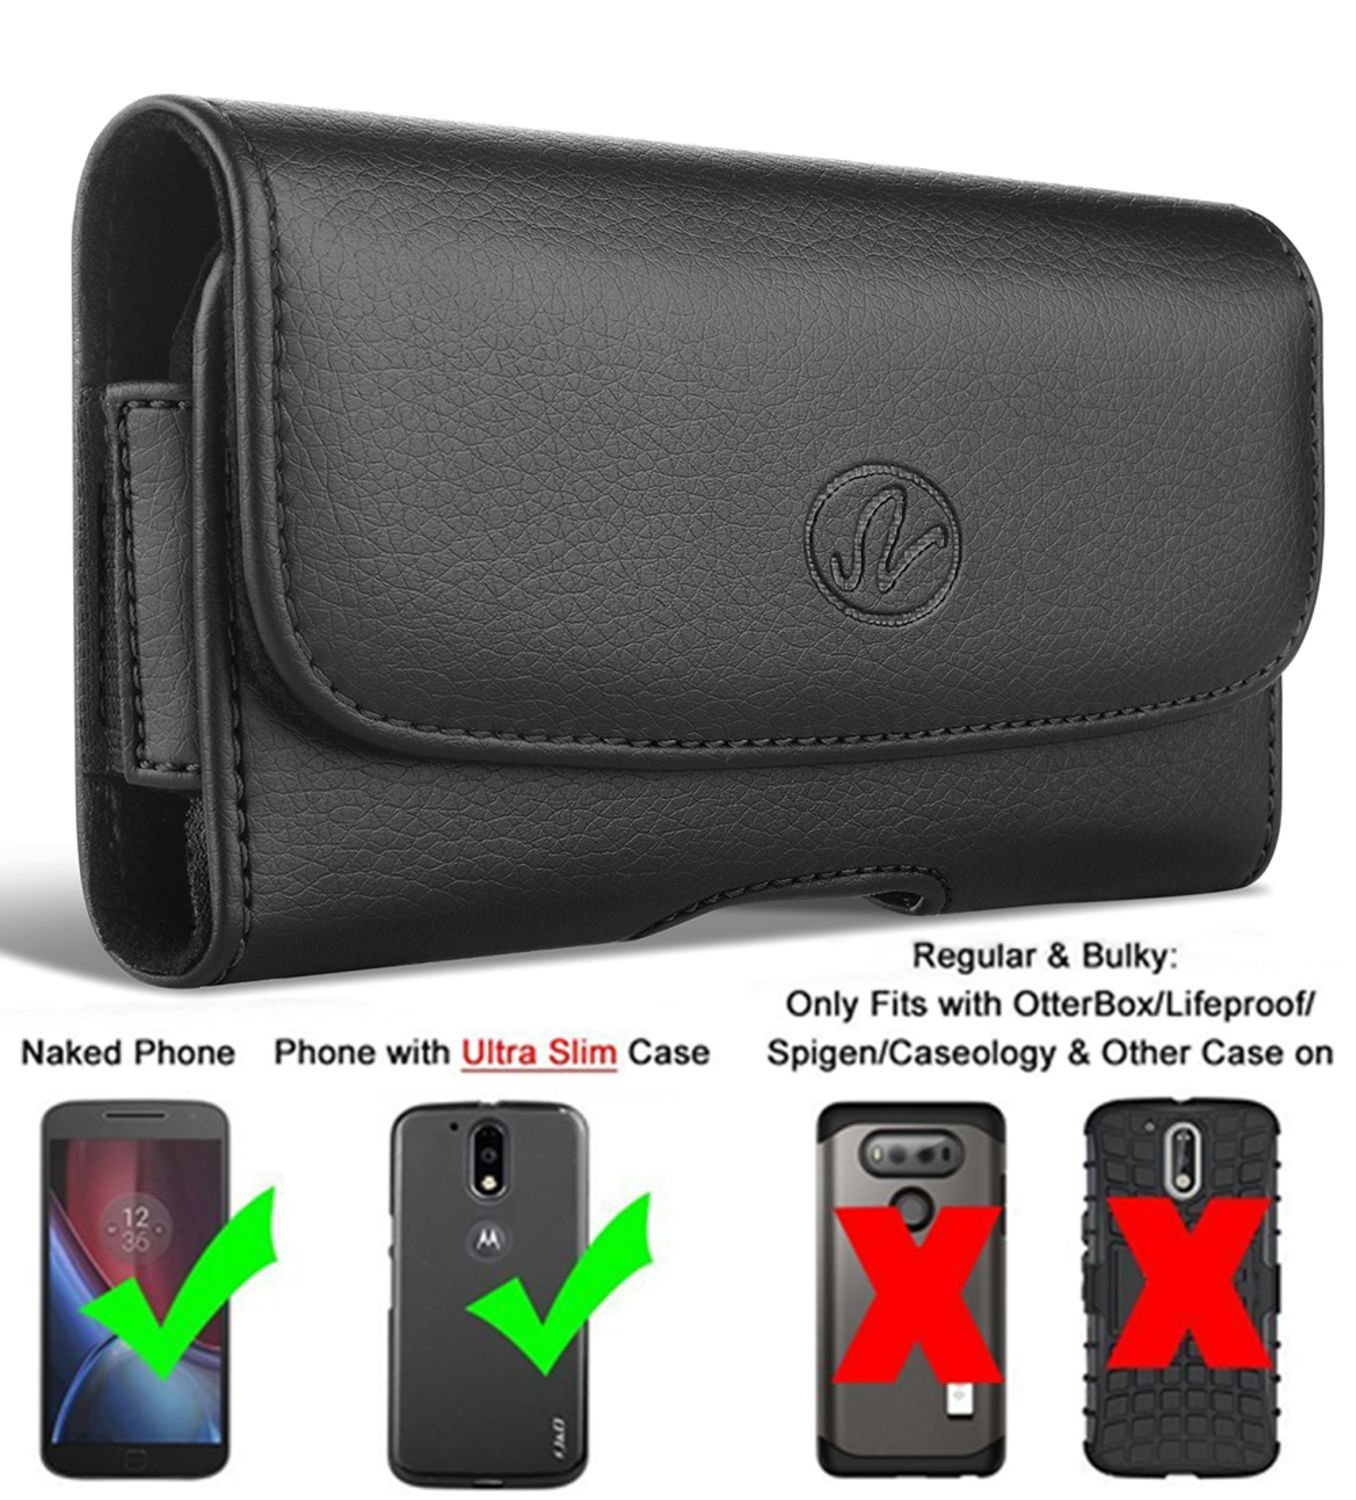 Apple iPod touch 4th generation Horizontal Leather Carrying Case Holster Belt Clip NEM Electronics